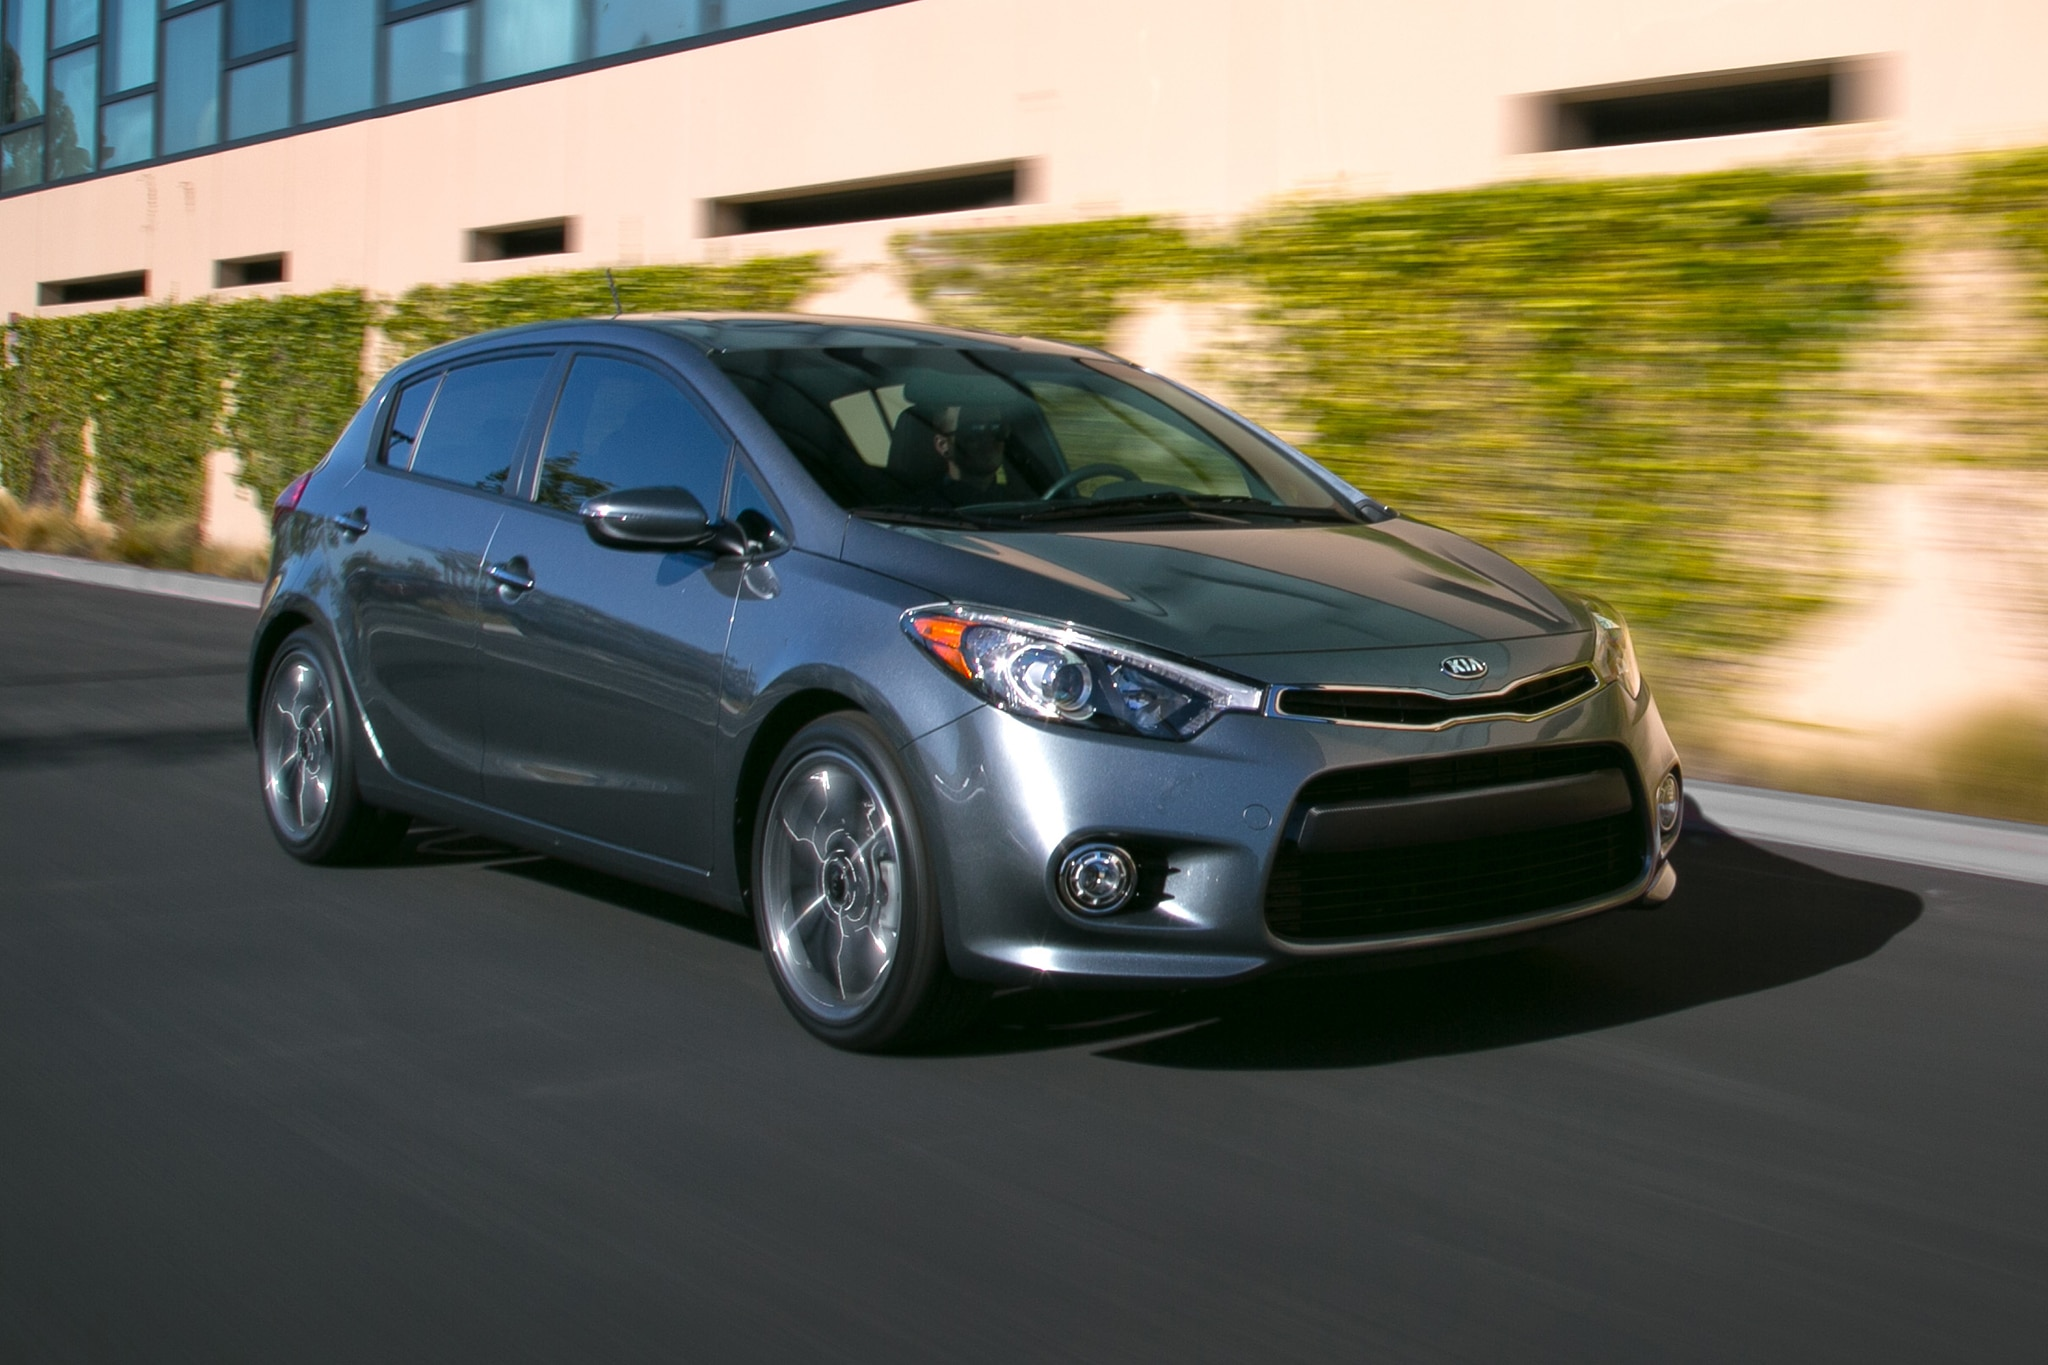 Grins Come Easily We Set Off In The 2014 Kia Forte5 SX ...